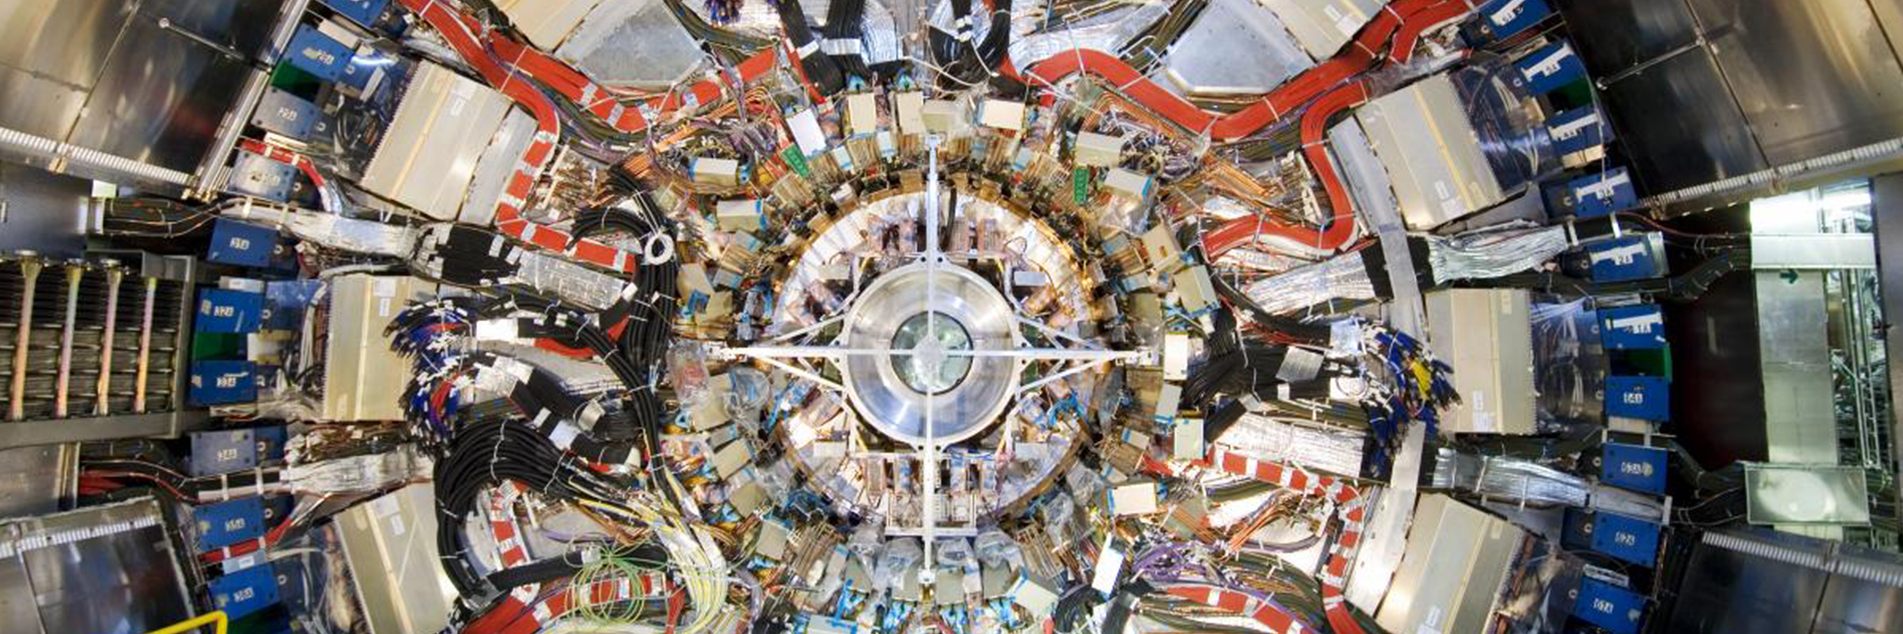 ATLAS detector at CERN. Photo: CERN.